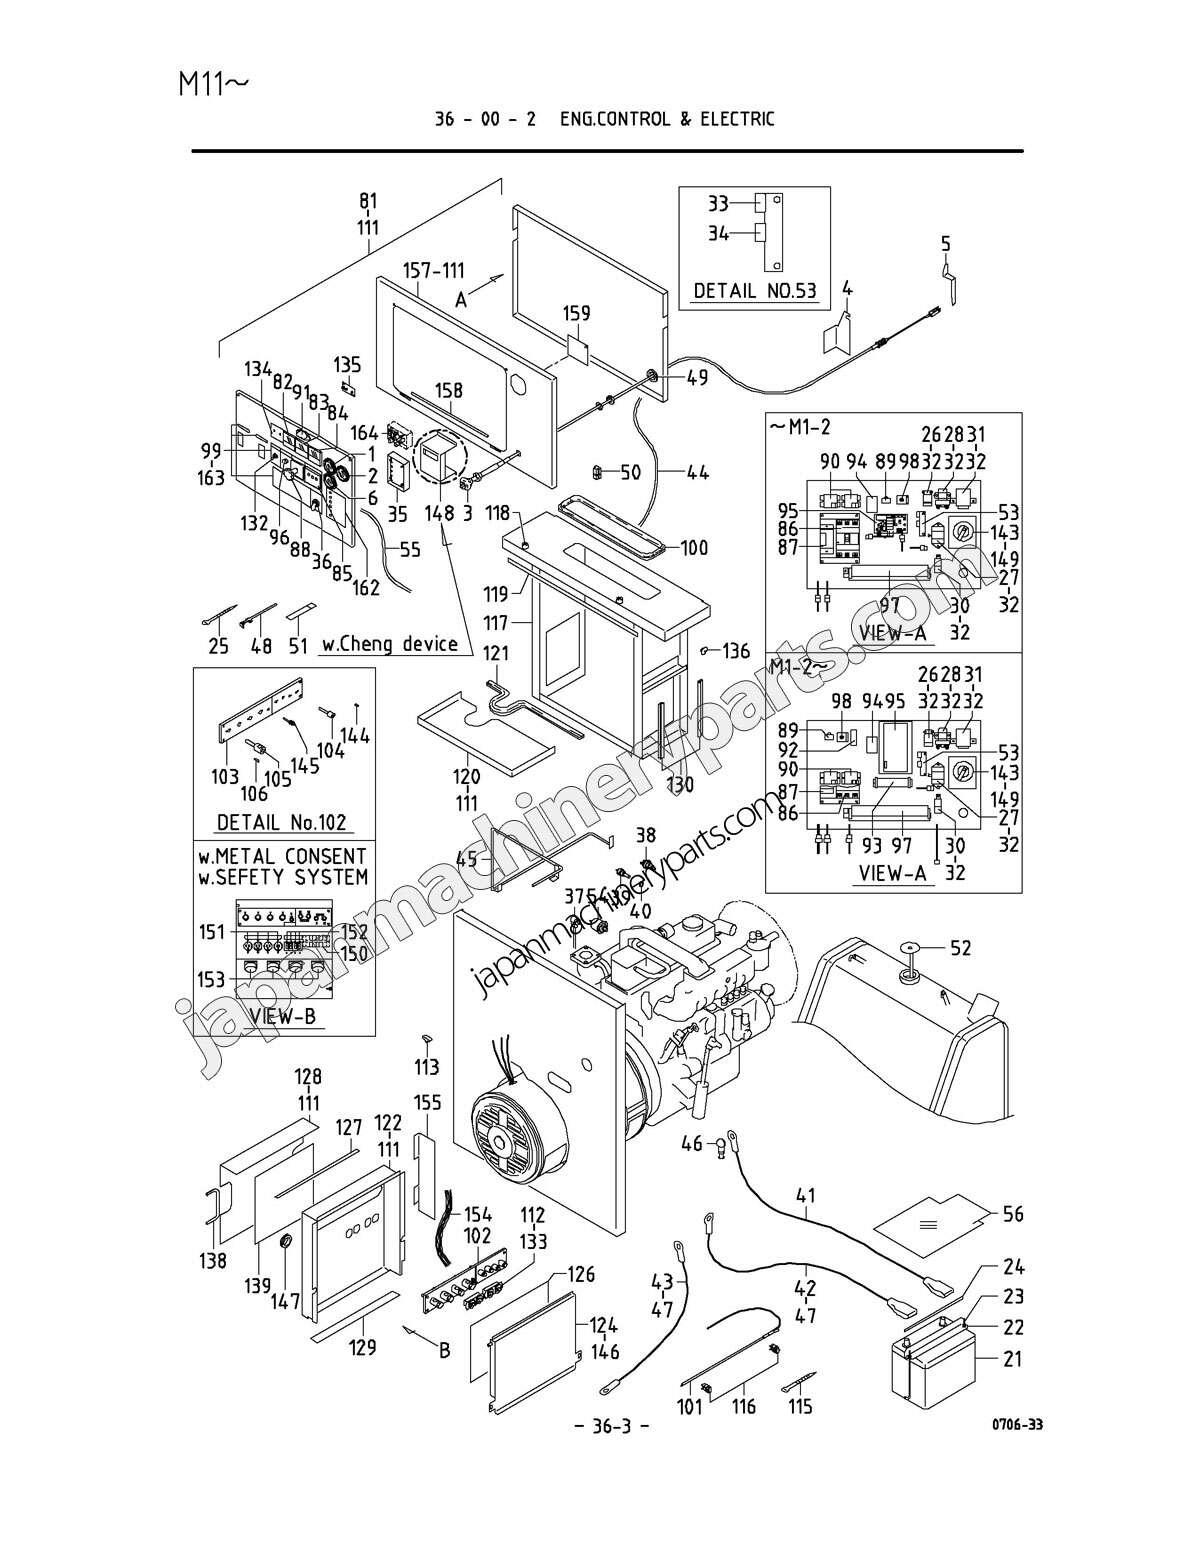 kubota d950 engine parts diagram kubota zd323 parts